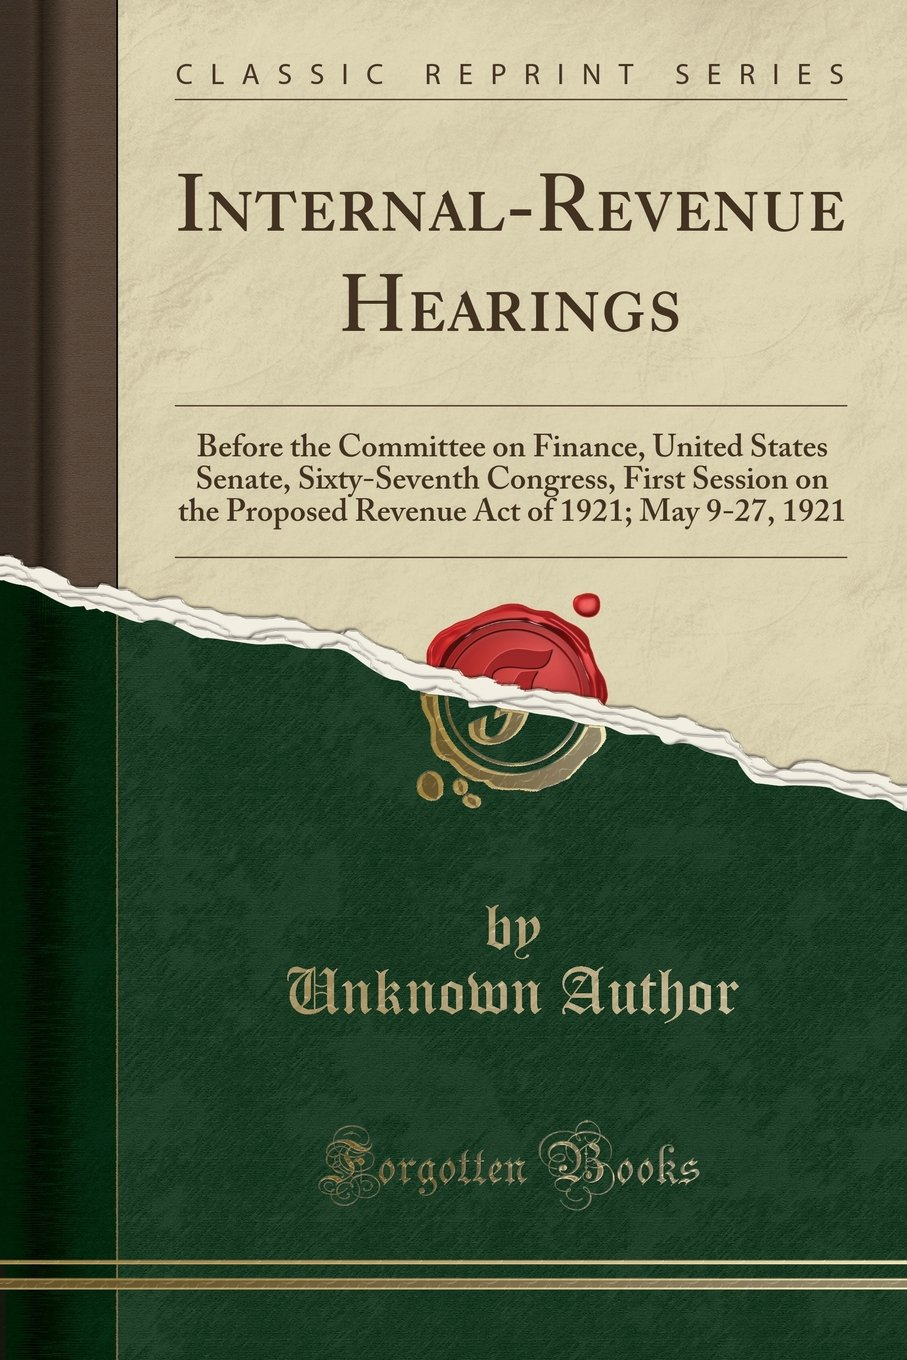 Internal-Revenue Hearings: Before the Committee on Finance, United States Senate, Sixty-Seventh Congress, First Session on the Proposed Revenue Act of 1921; May 9-27, 1921 (Classic Reprint) pdf